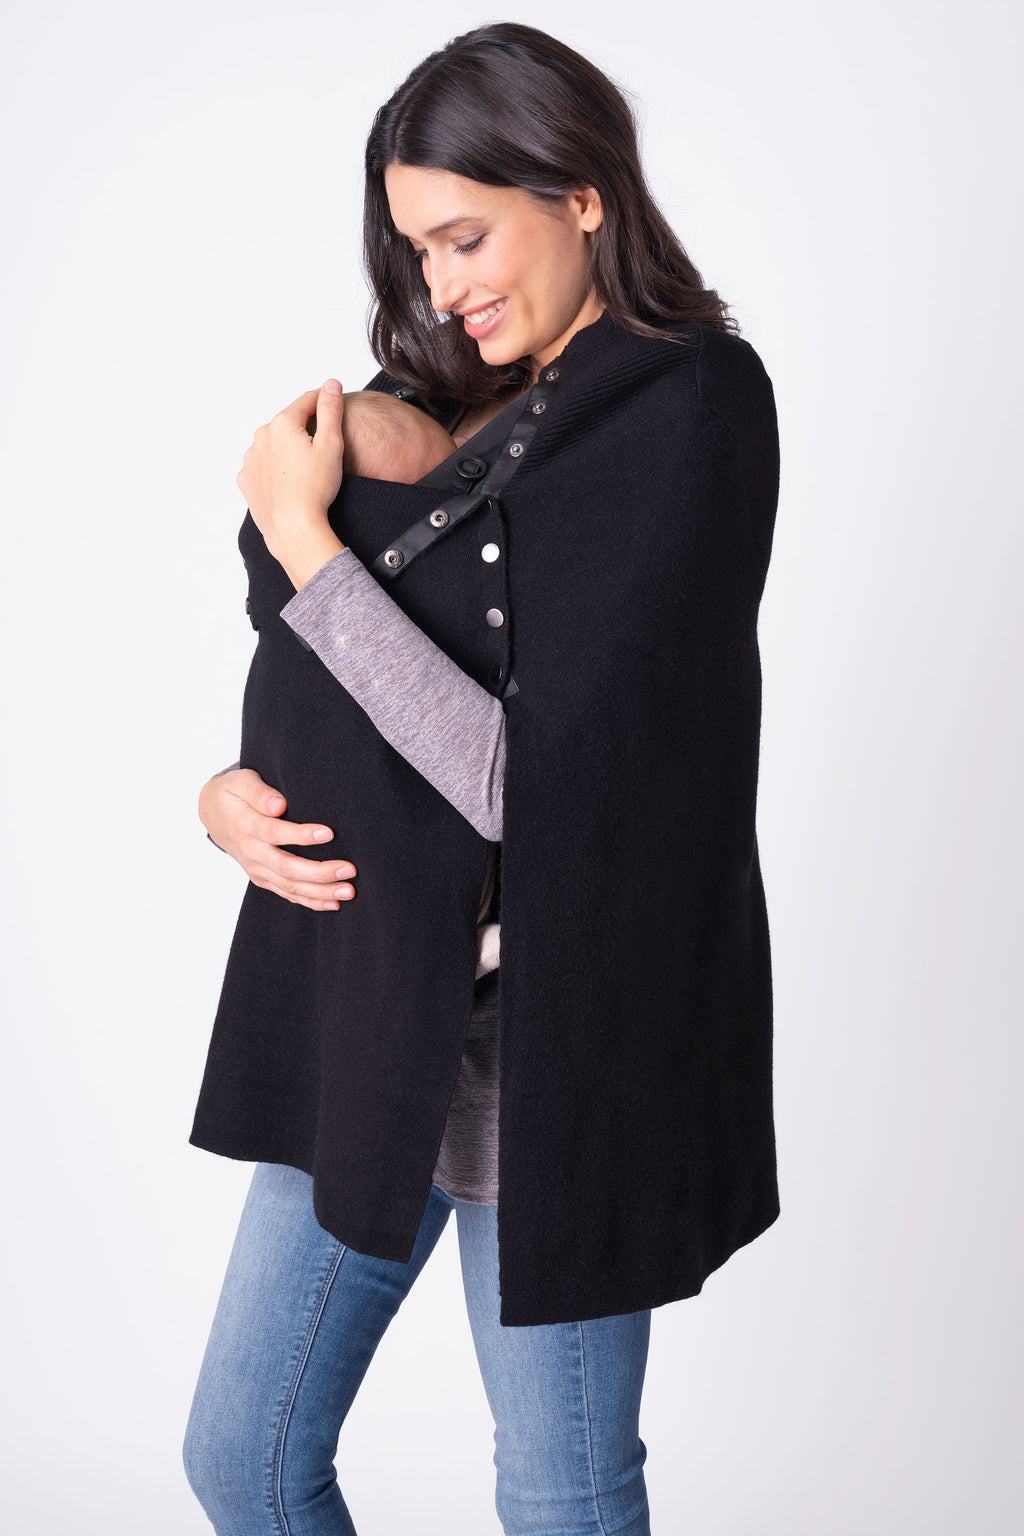 Seraphine Romana Knitted Maternity and Nursing Cape - Seven Women Maternity